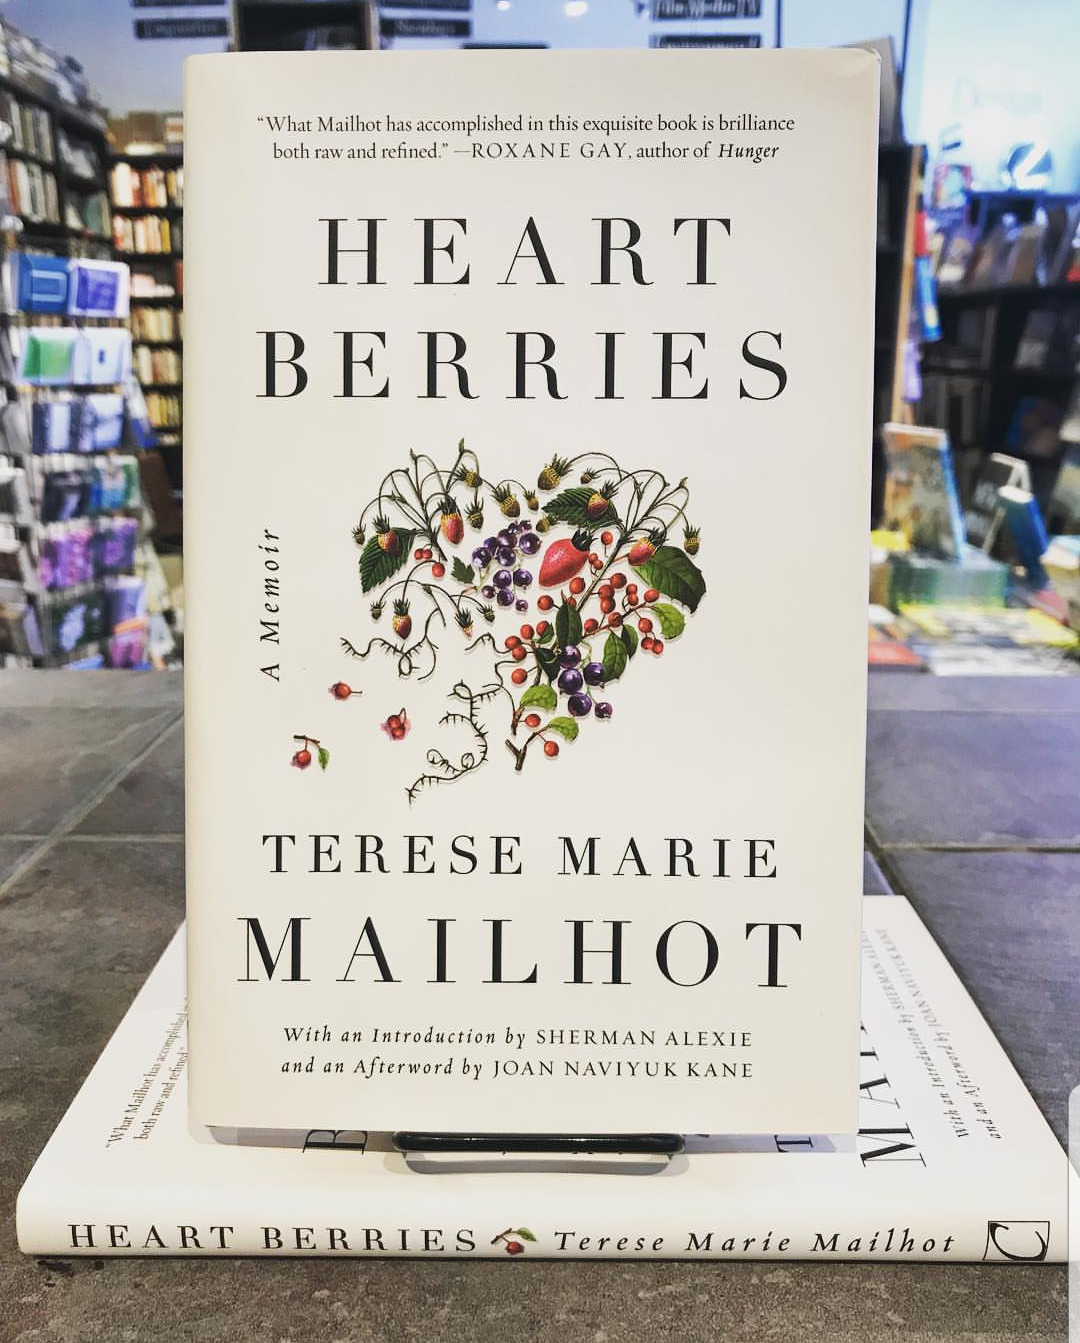 """Heart Berries"" by Teresa Marie Mailhot is a New York Times Bestseller. Photo courtesy of Symposium Books."